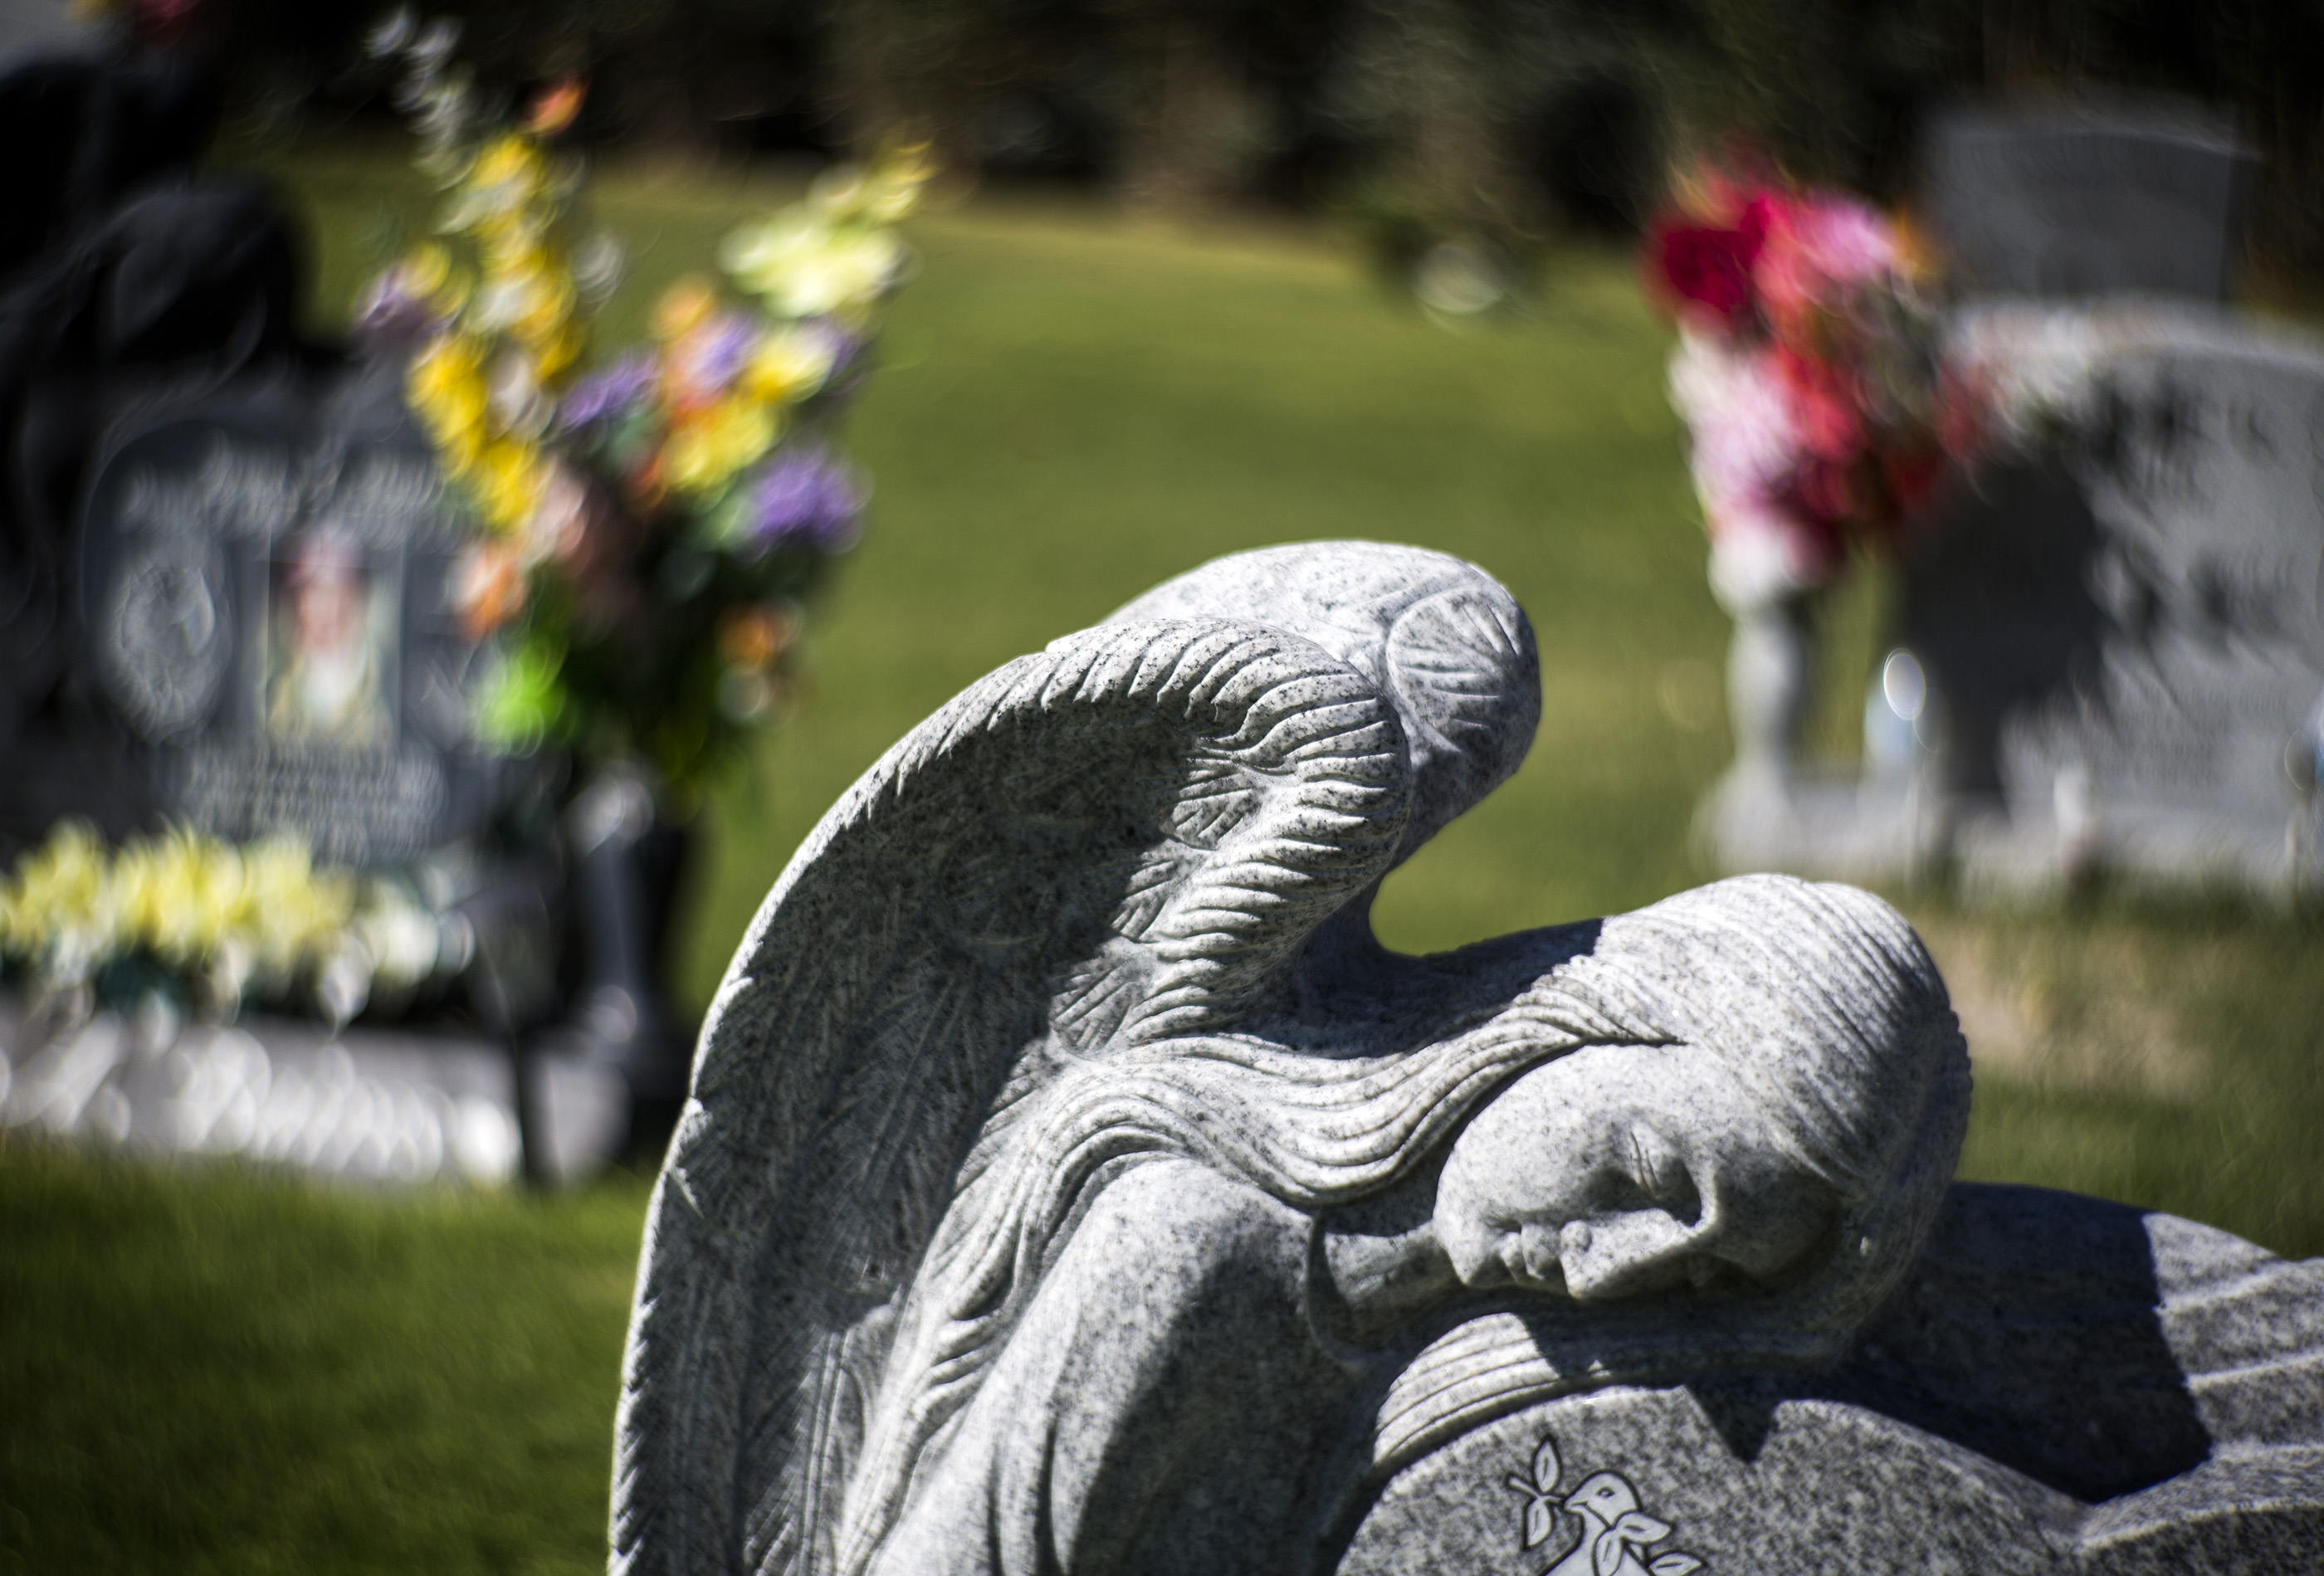 Tombstones is seen at Bunkers Eden Vale Cemetery, 925 Las Vegas Boulevard, North on Friday, Oct. 2,2015. Jeff Scheid/ Las Vegas Review-Journal Follow @jlscheid